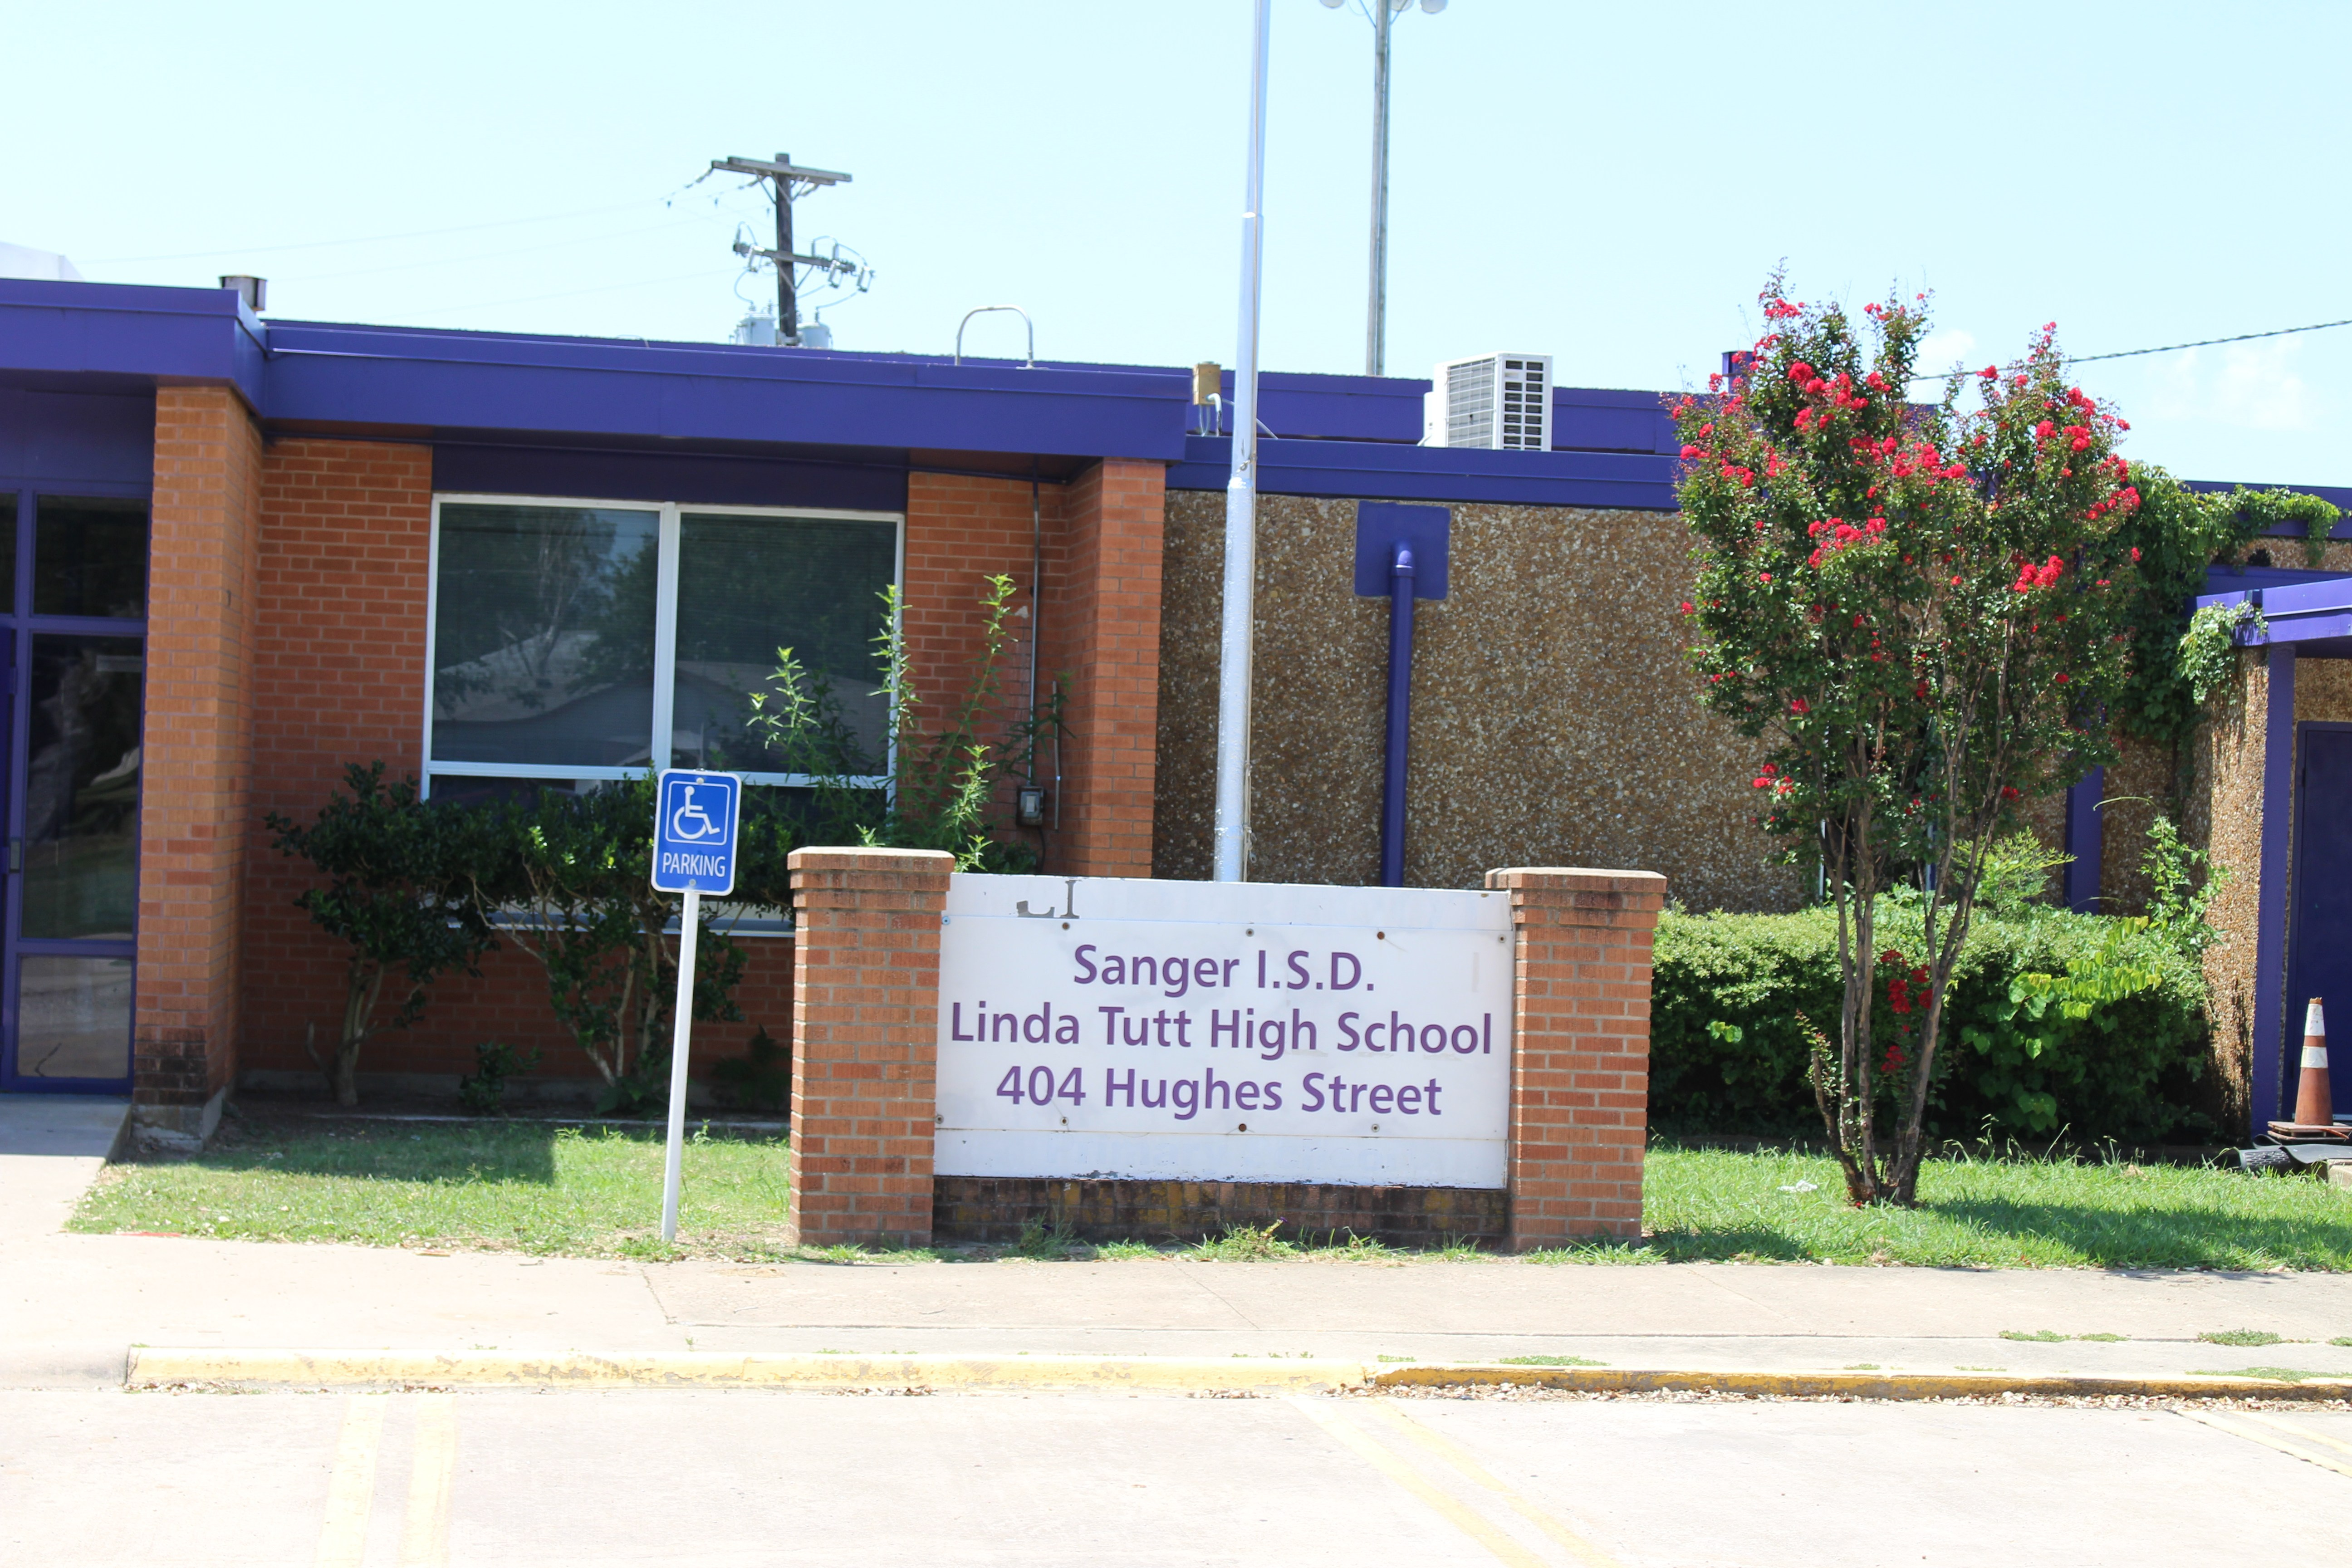 Linda Tutt High School